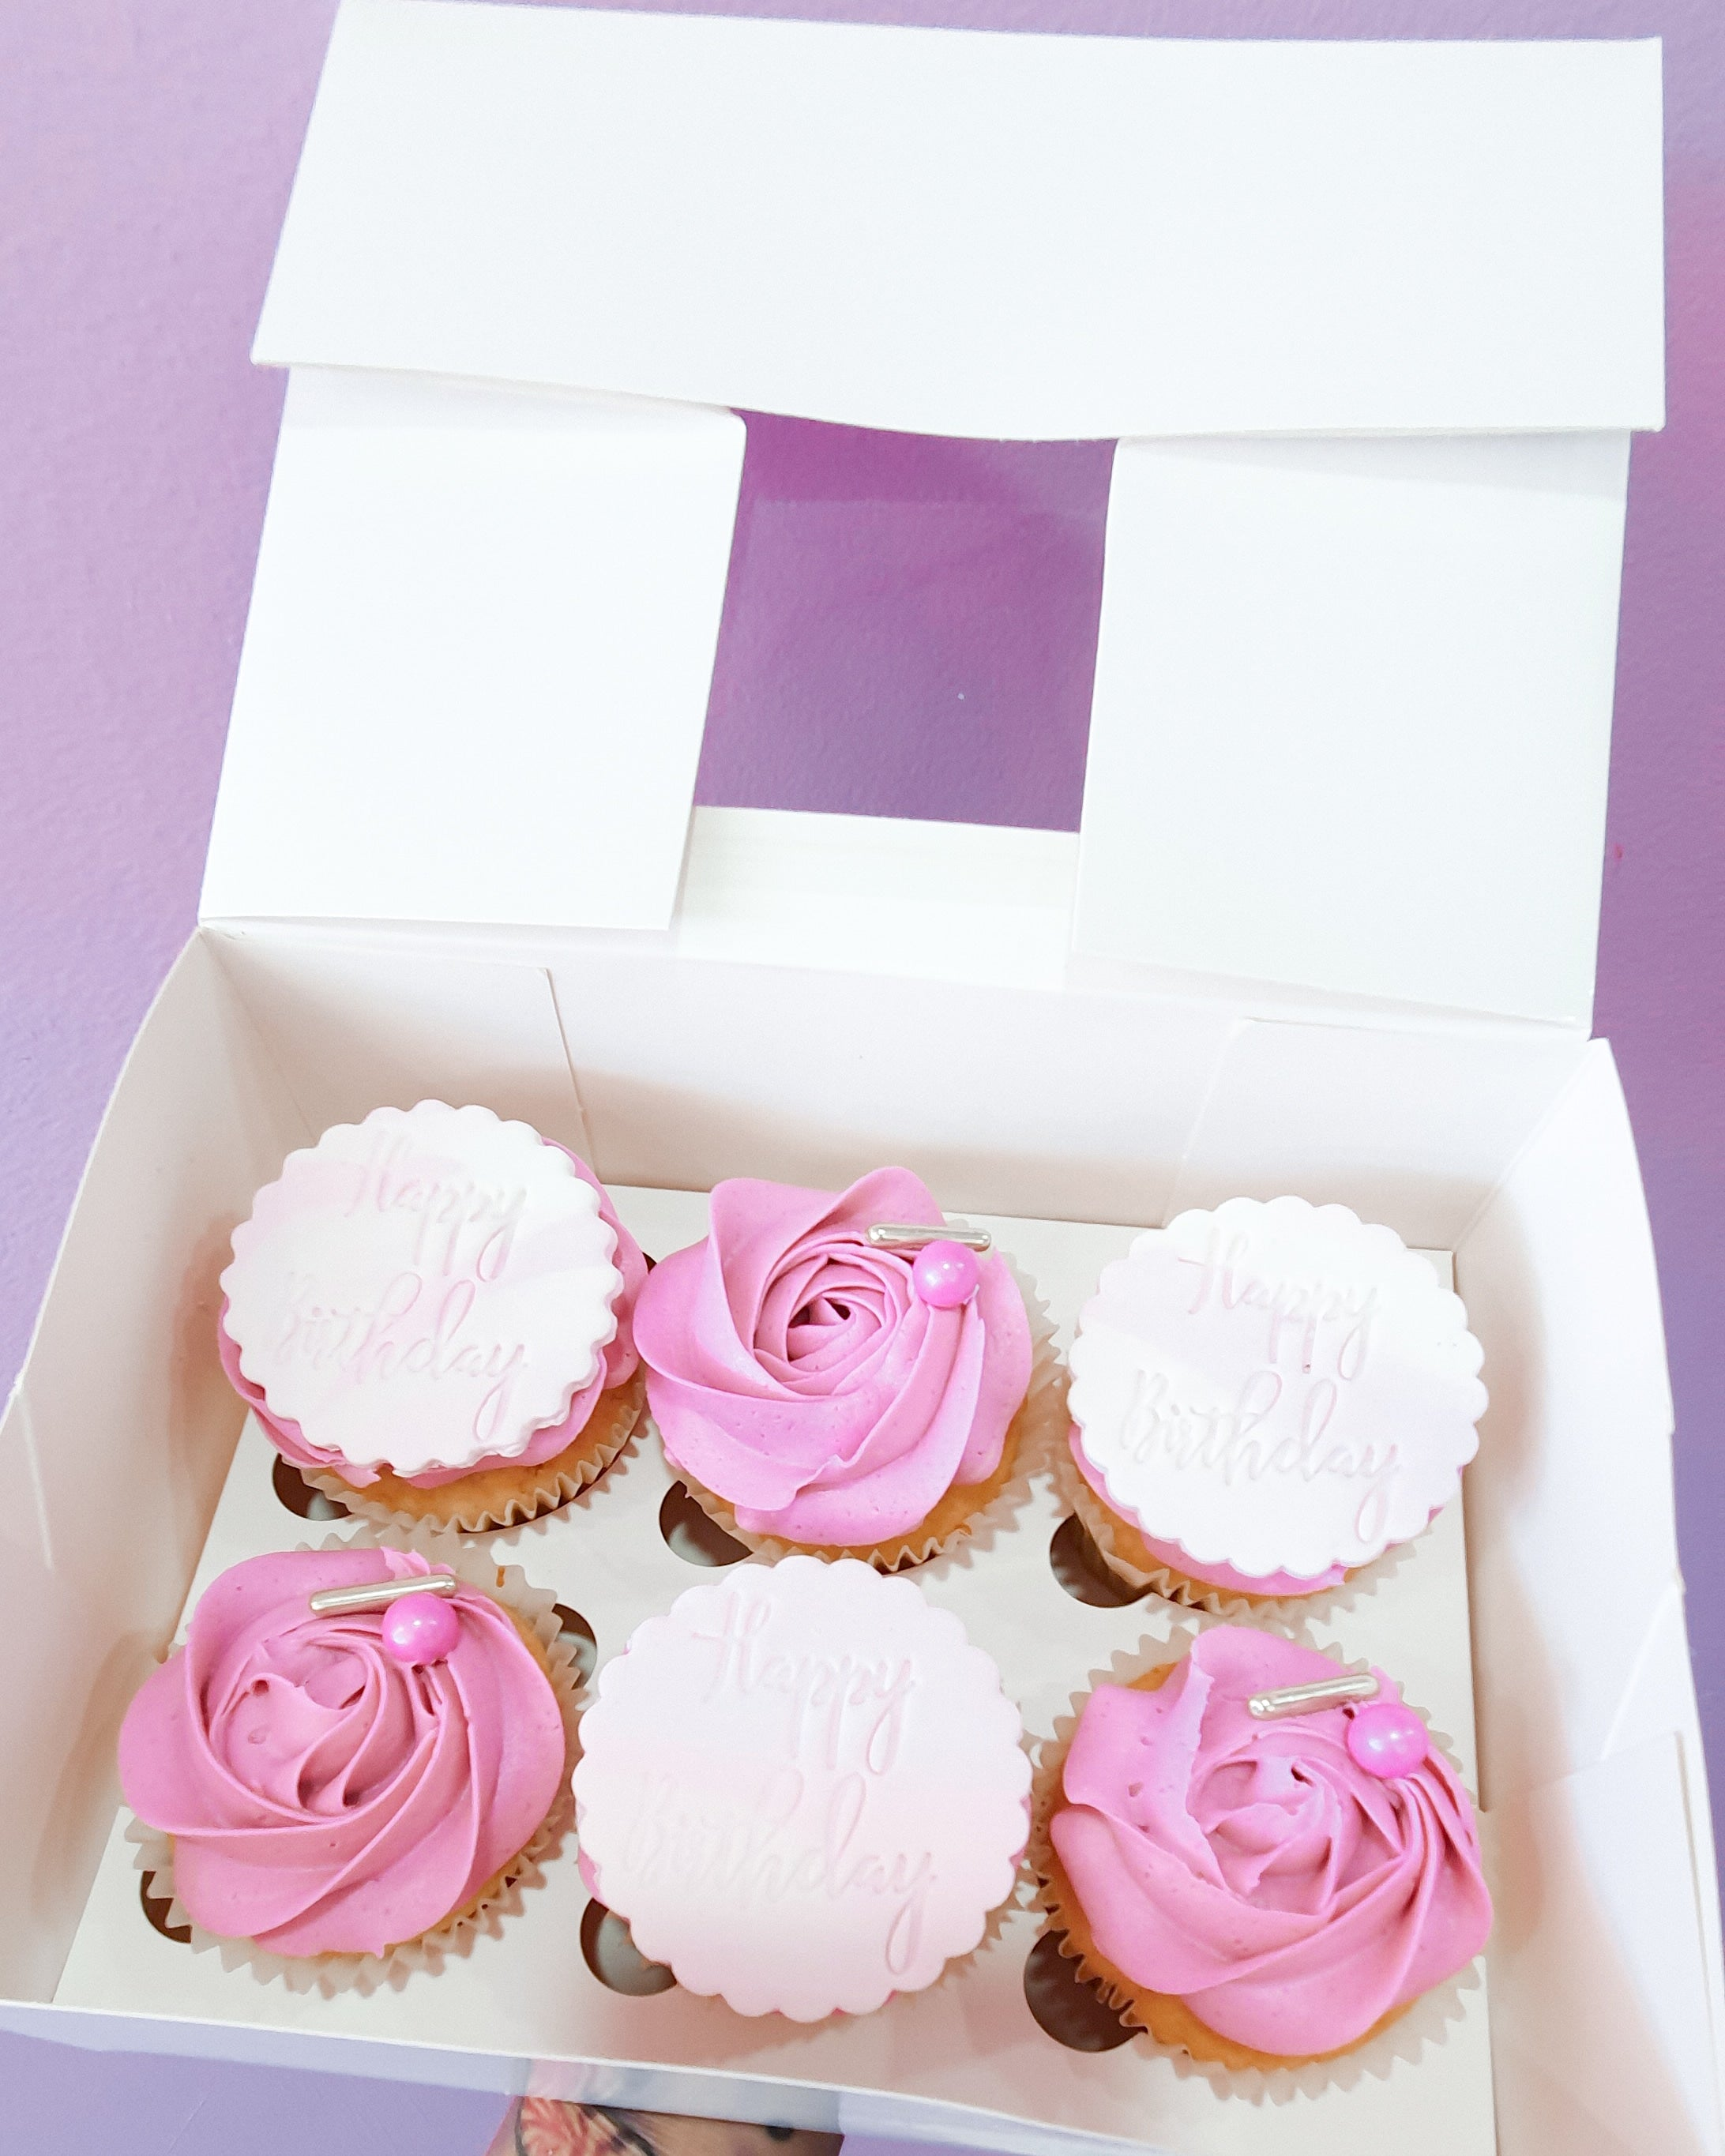 Custom Cupcake with Message Plaque (1 days notice required)